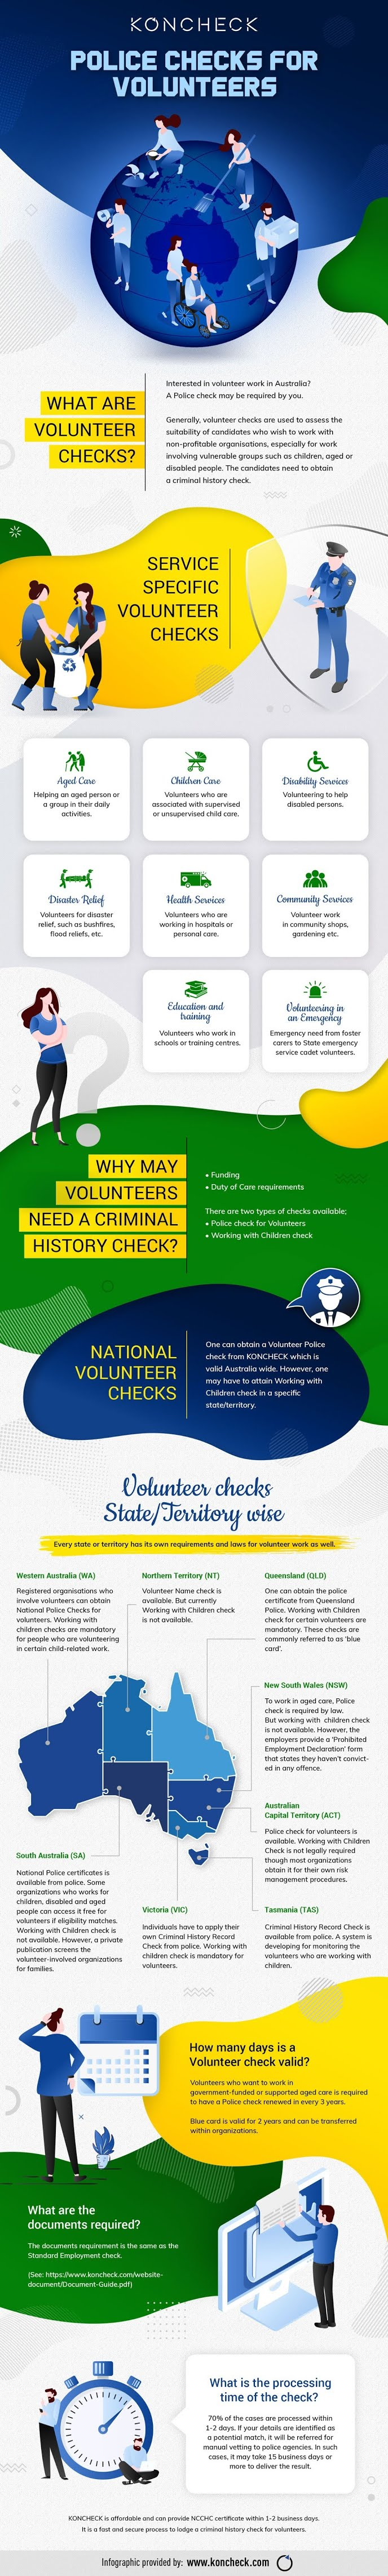 How a Criminal History Check is Important for a Volunteer #infographic